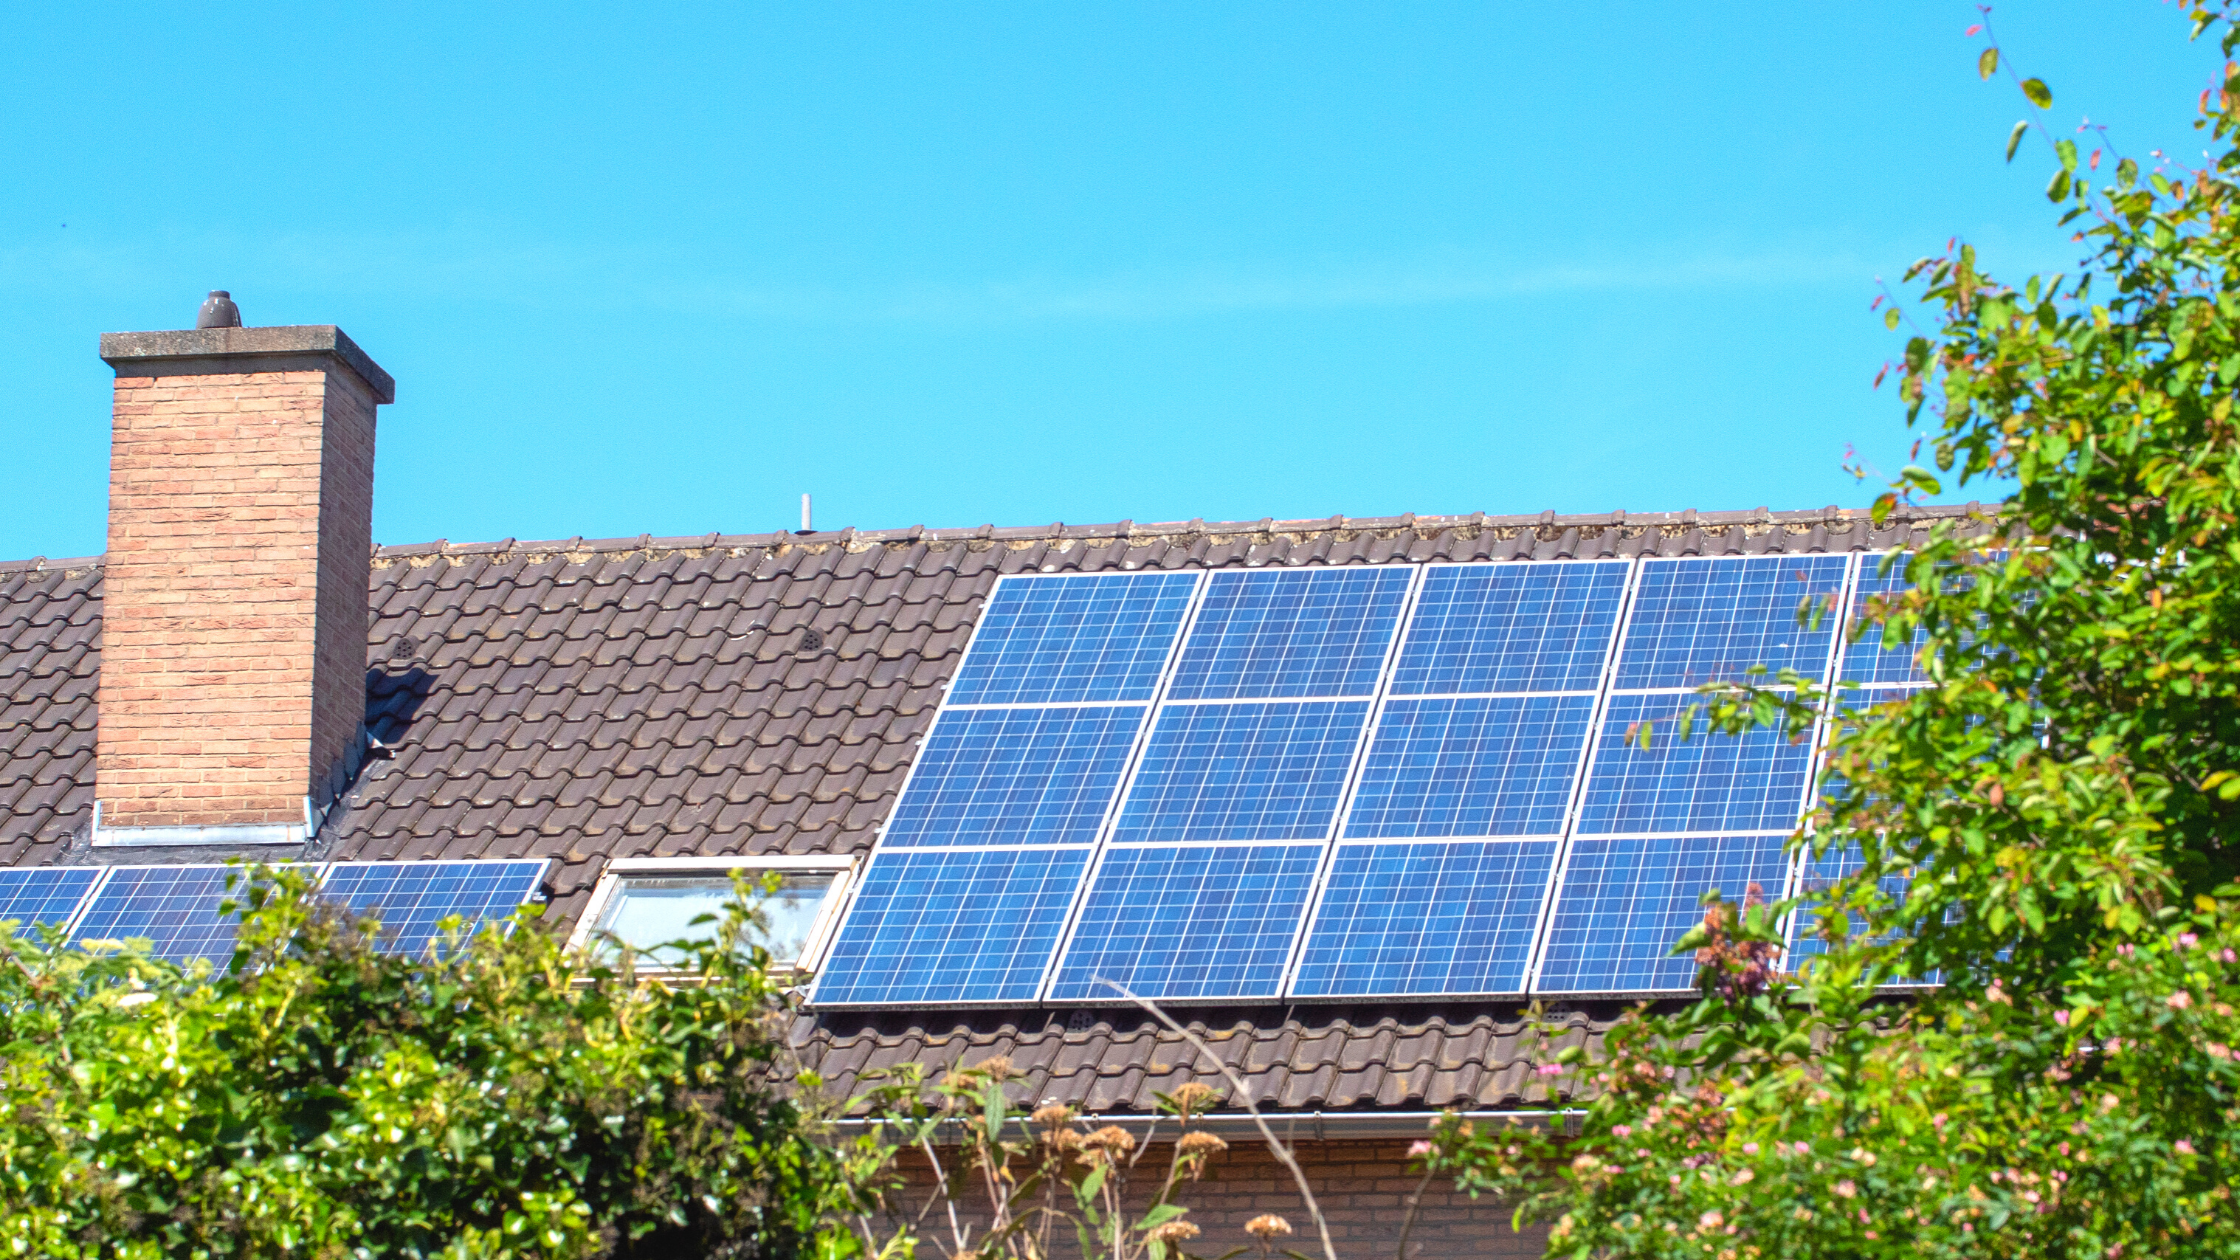 Proposed solar tariff a disincentive for household renewable energy - ABC Radio